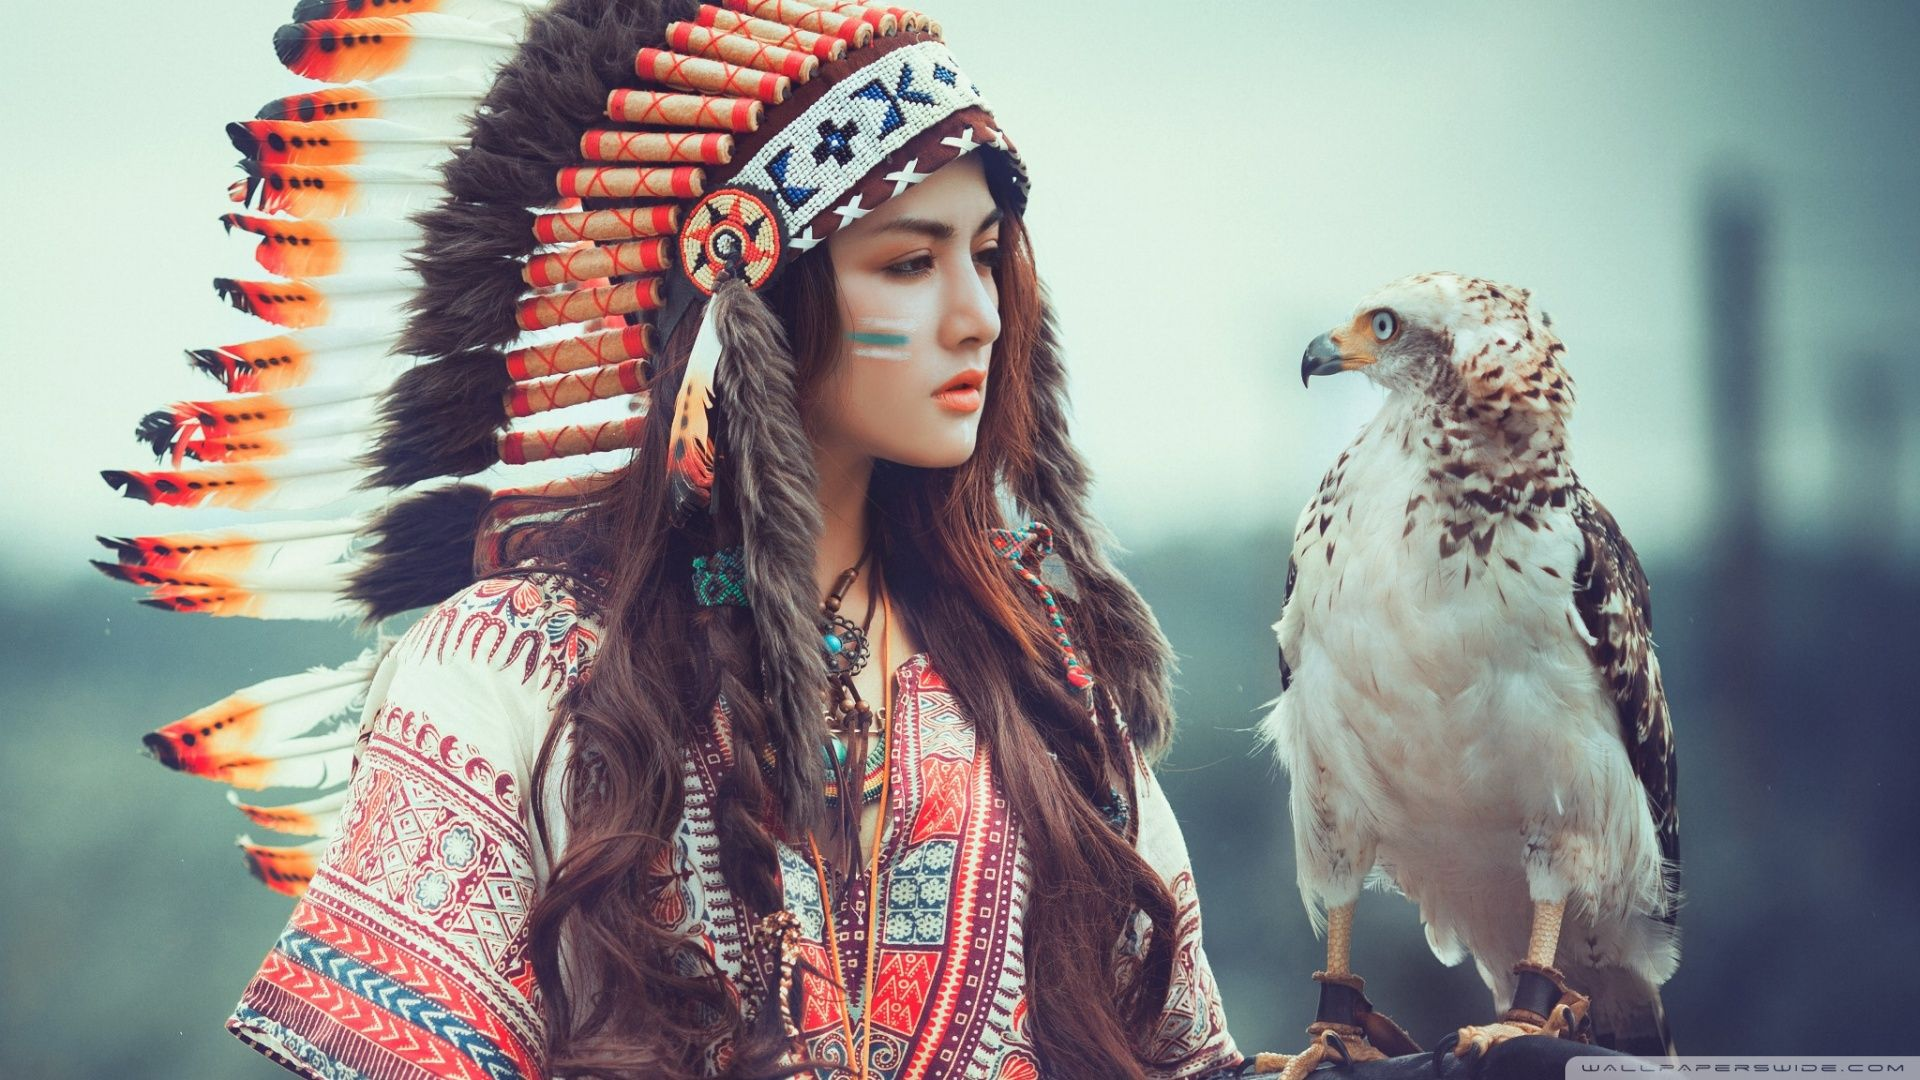 Native American Hd Wallpapers Top Free Native American Hd Backgrounds Wallpaperaccess